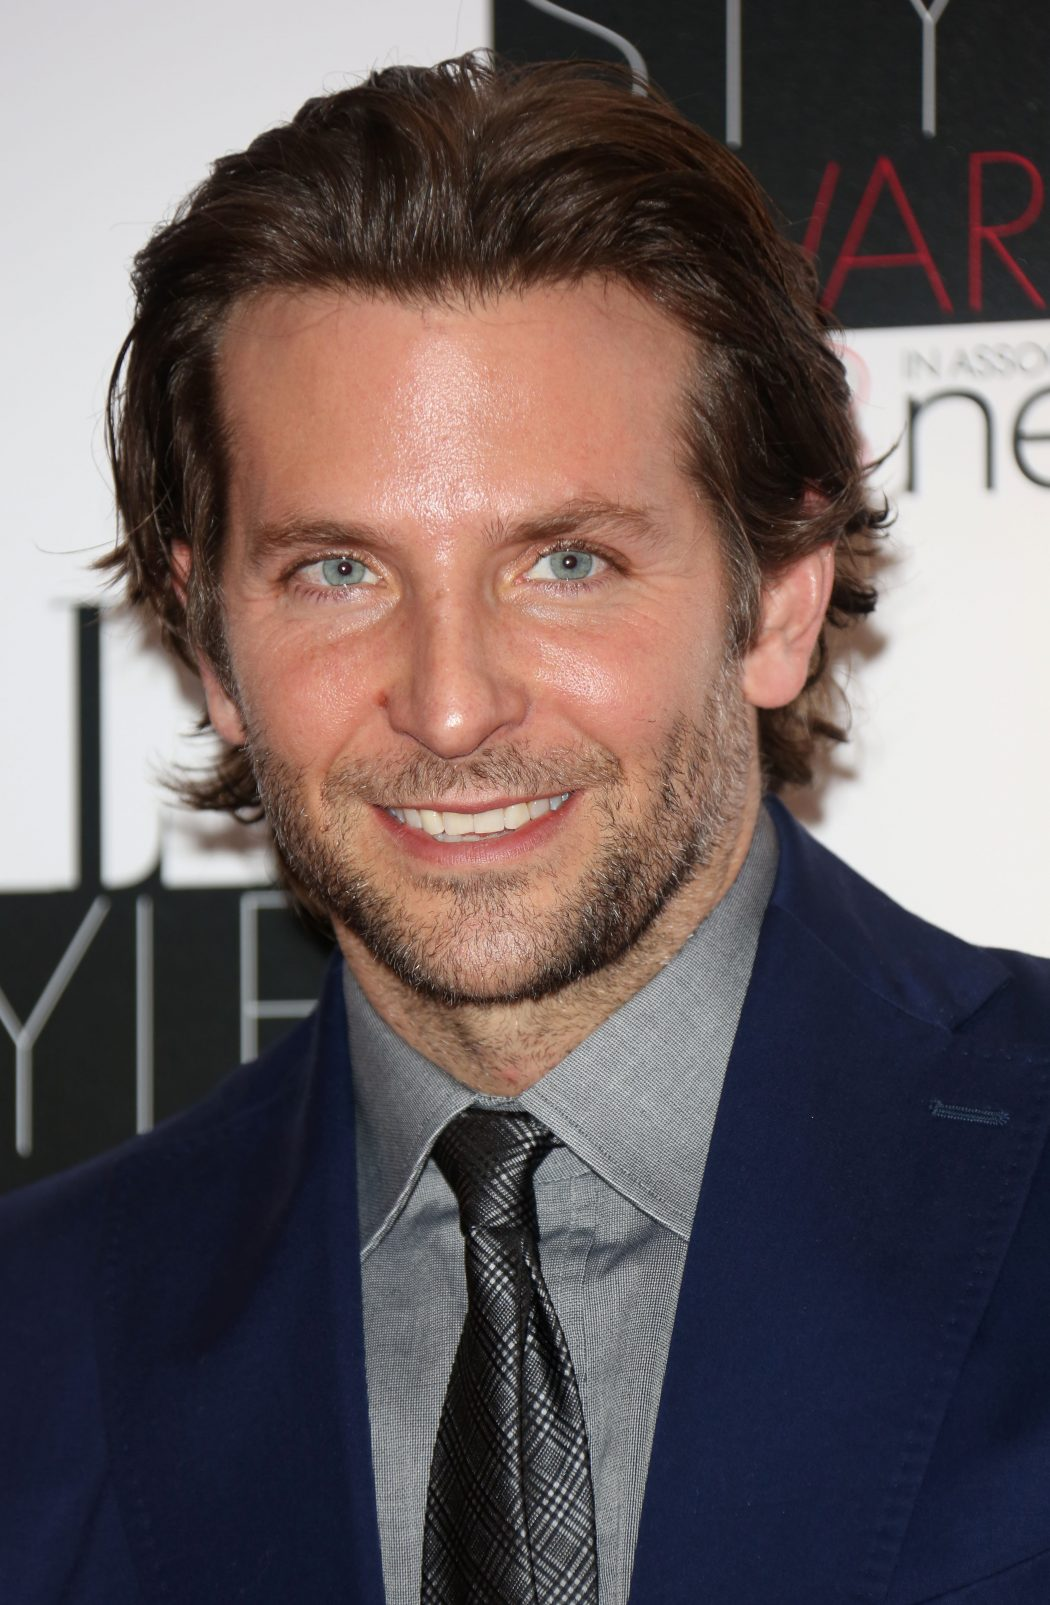 Bradley-Cooper Top 10 Most Handsome (Good Looking) Hollywood Actors